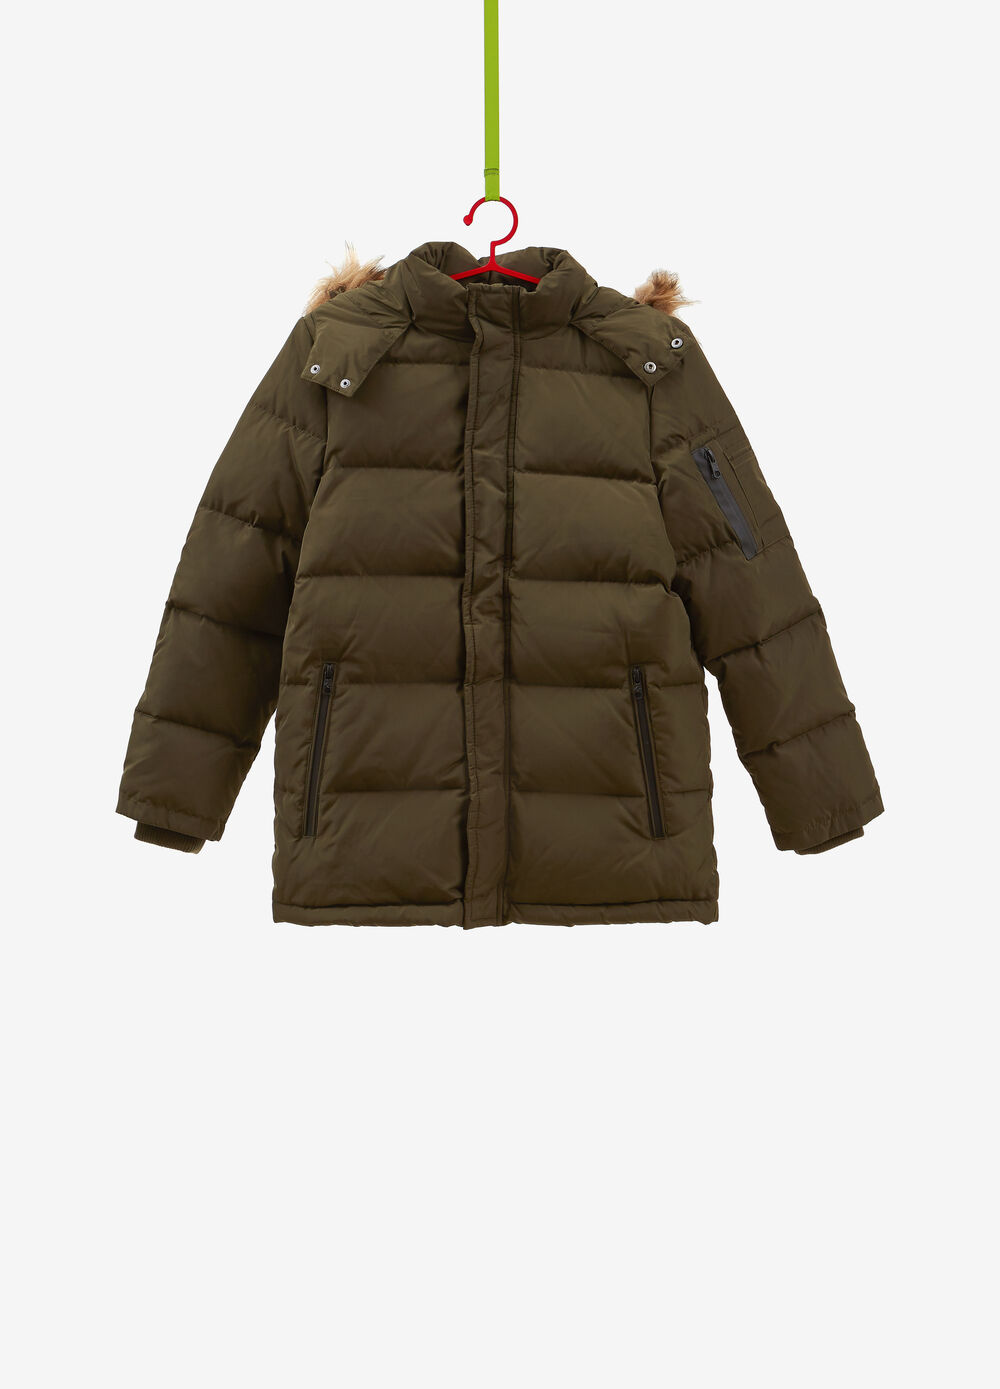 Very heavy down jacket with faux fur hood